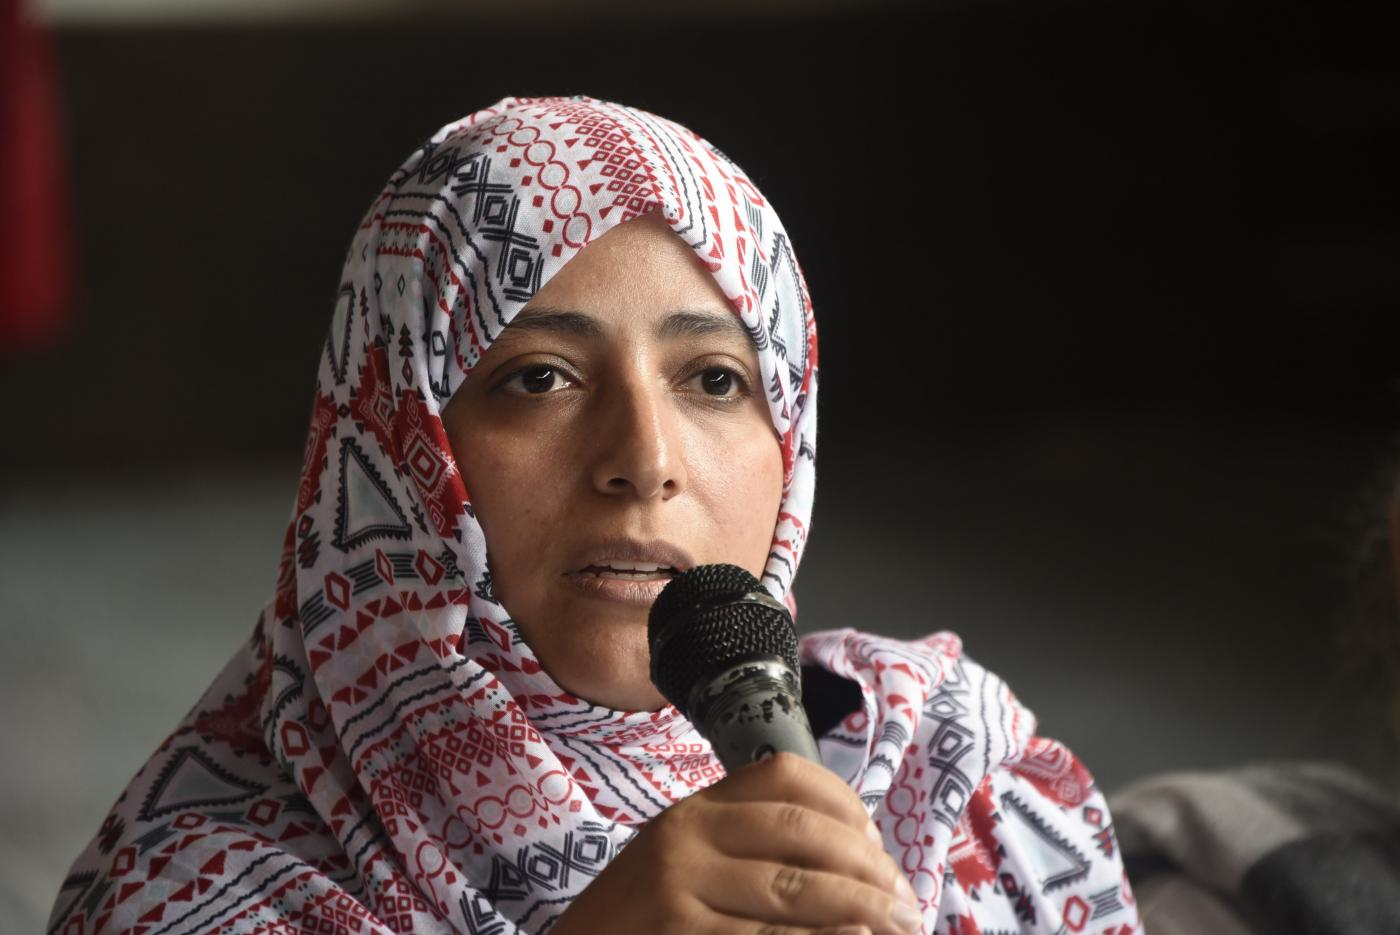 Tawakkol Karman Faces Targeted Gulf Criticism for New Facebook Role